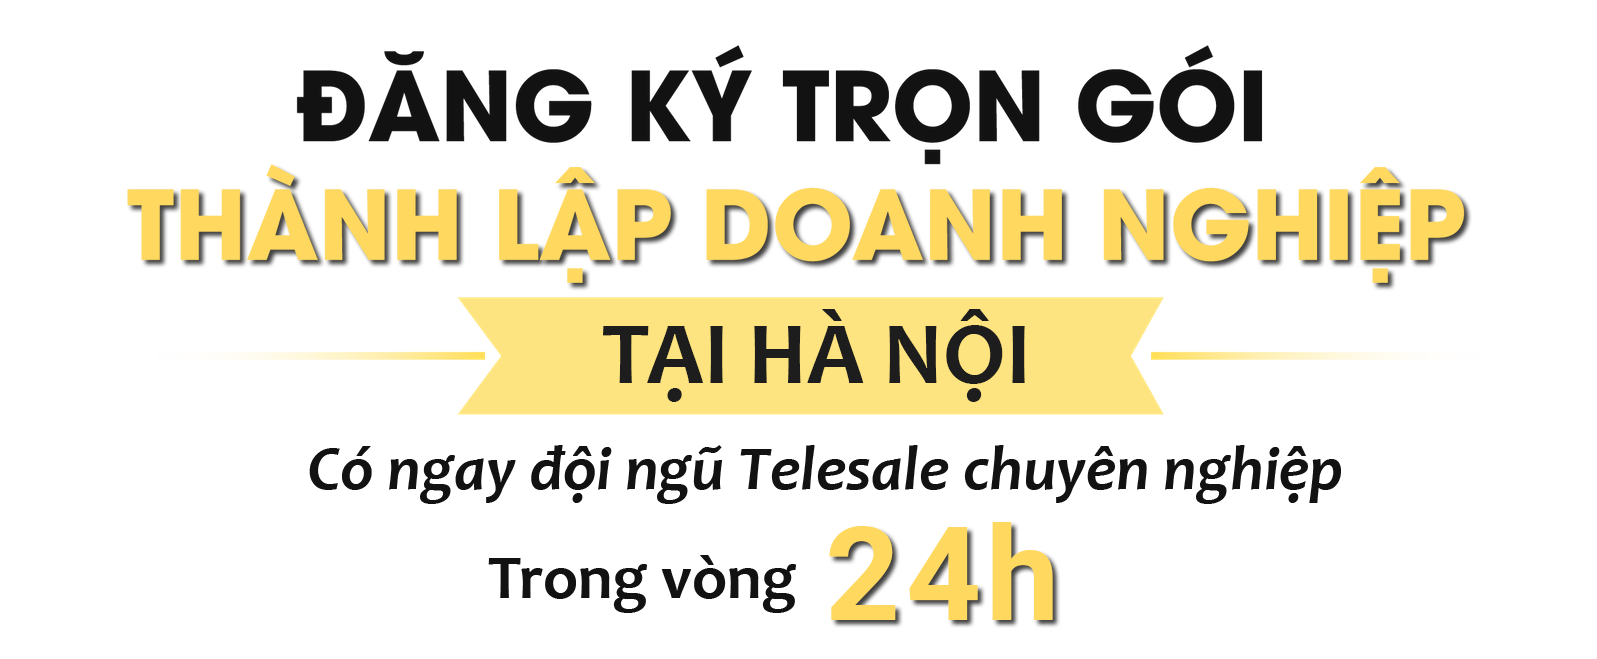 https://trungquanmedia.vn/wp-content/uploads/2021/09/vtv-123.png